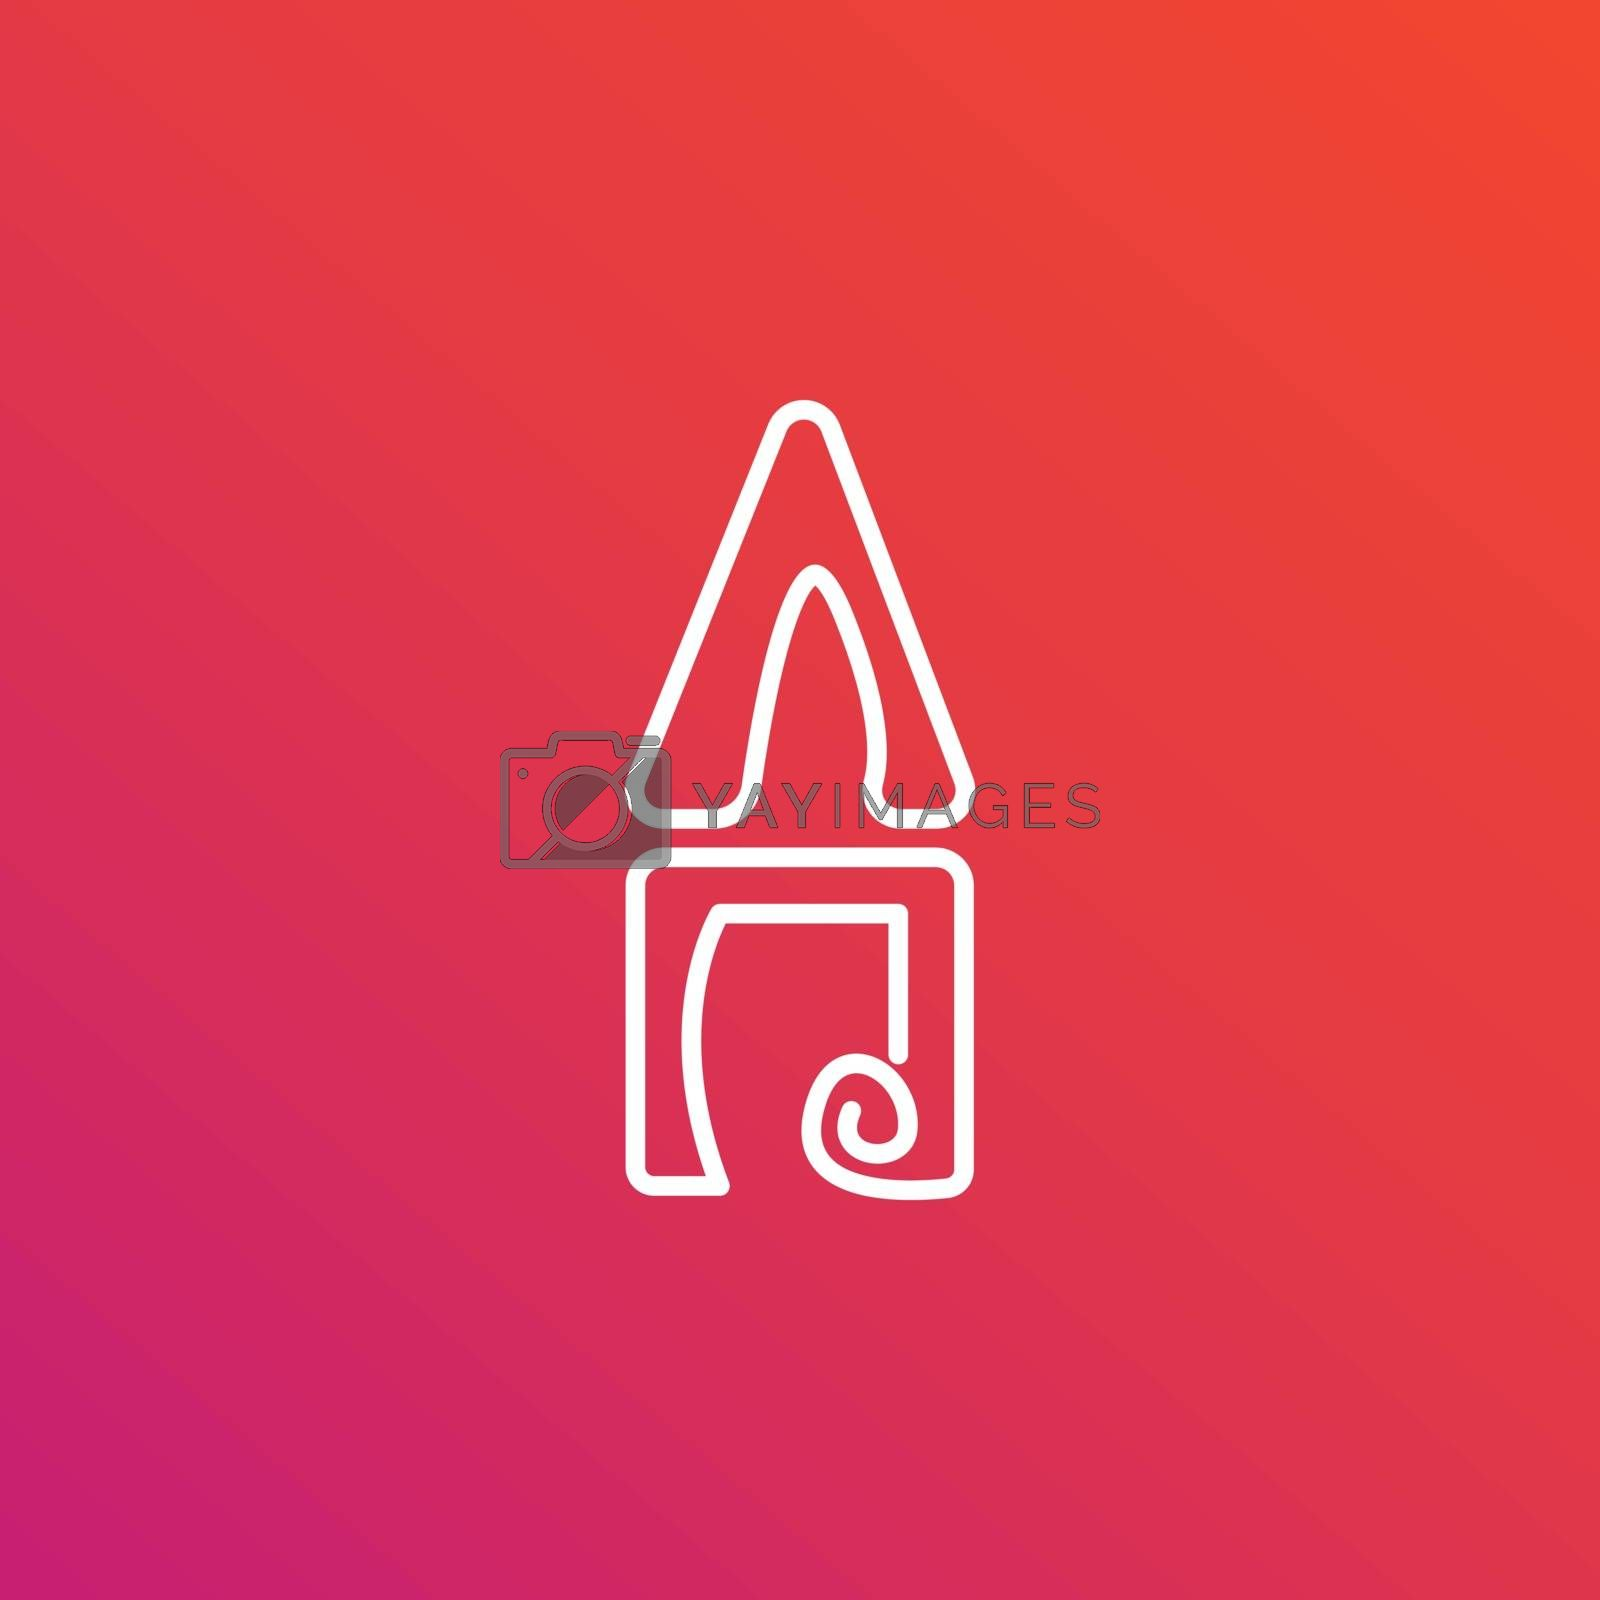 abstract letter a logo design. flat letter logo with gradient background